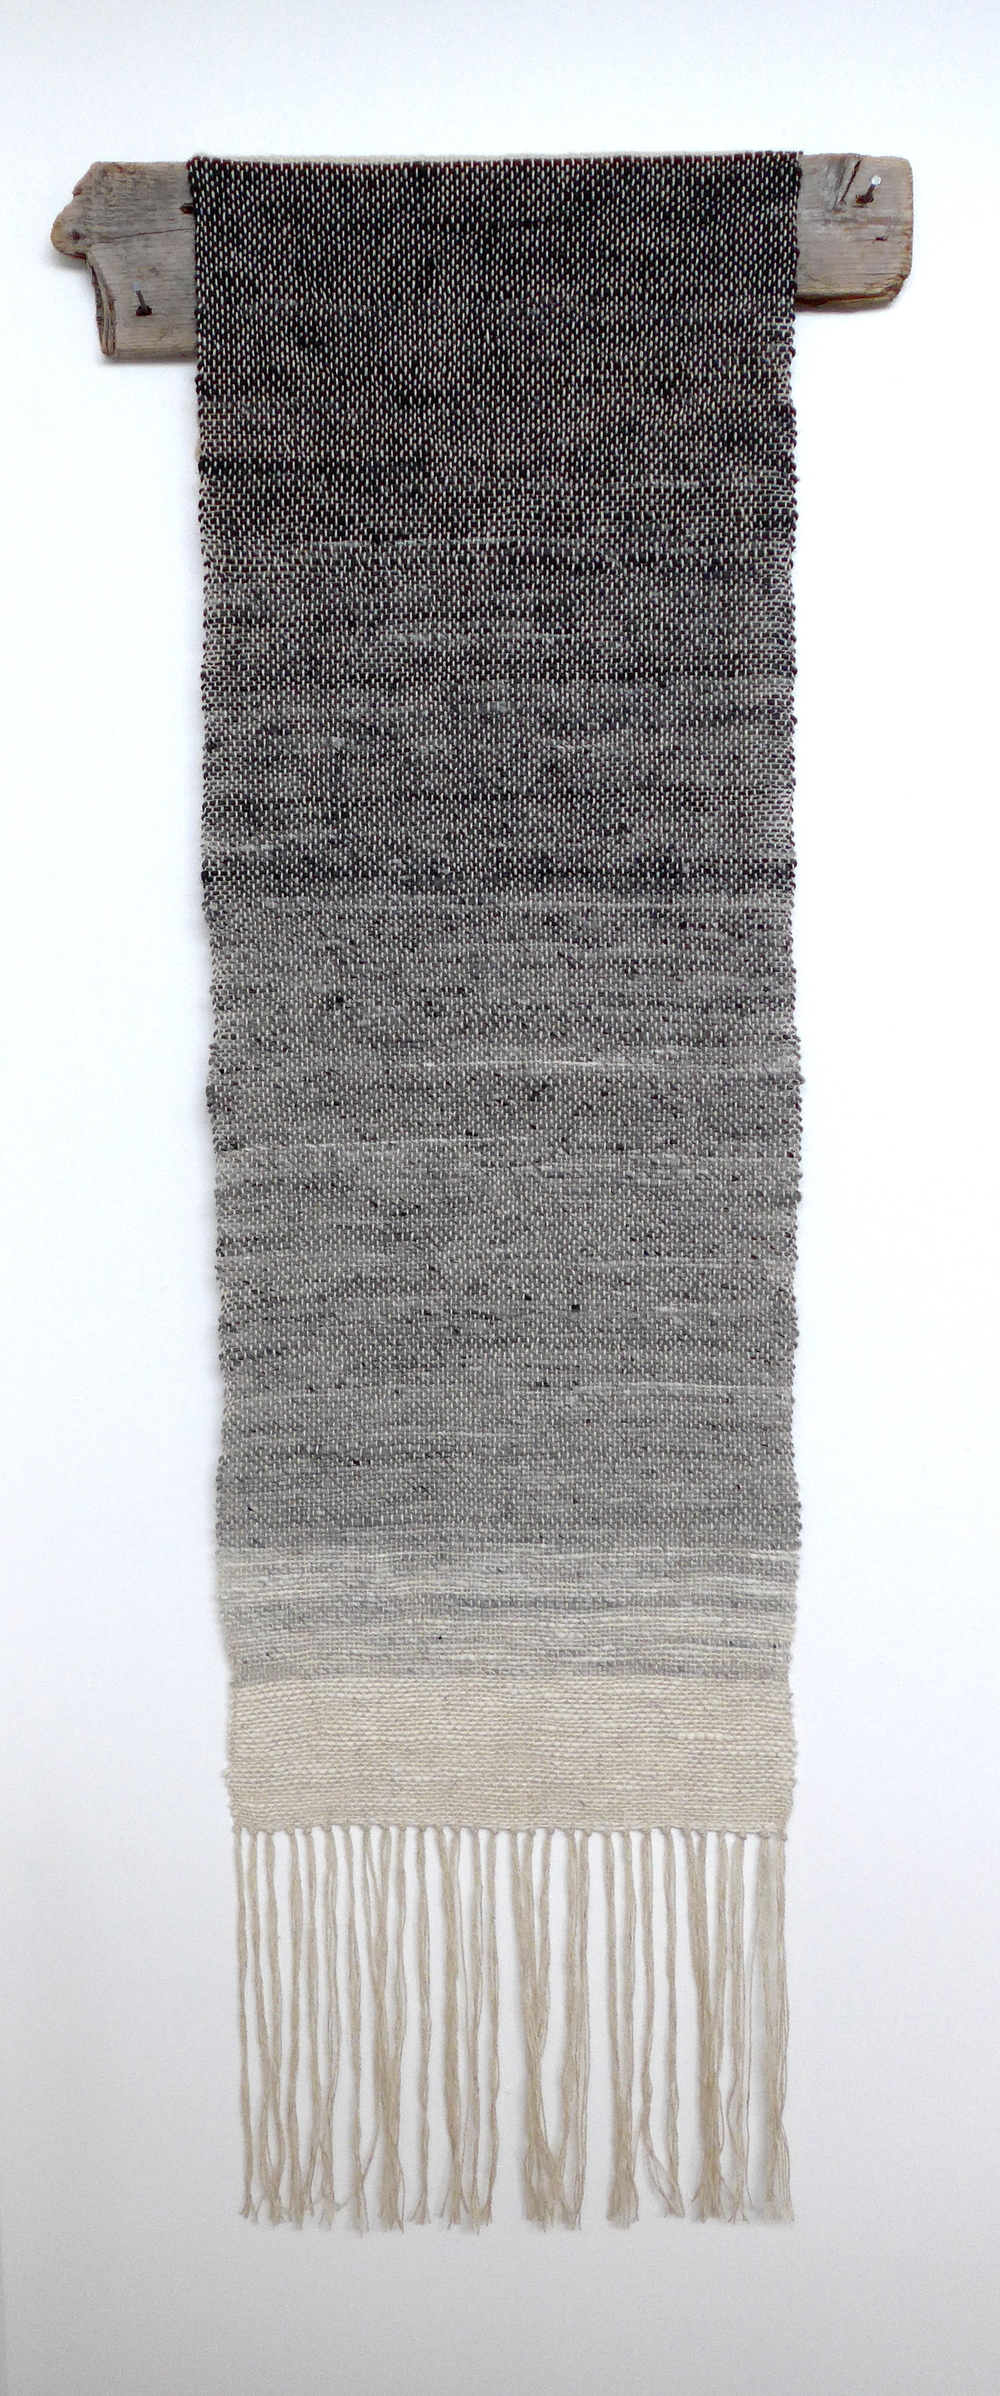 Icelandic Fog, Kim Mirus, 2015  I used Icelandic wool to carefully card and handspin this gradient into the yarn.  It was then woven with carefully sourced wool from a small farm of happy sheep, and hung from a piece of driftwood that arrived as I finished the piece.  This piece serves as an extensive study that will inform my next pieces woven from my handspun yarn.